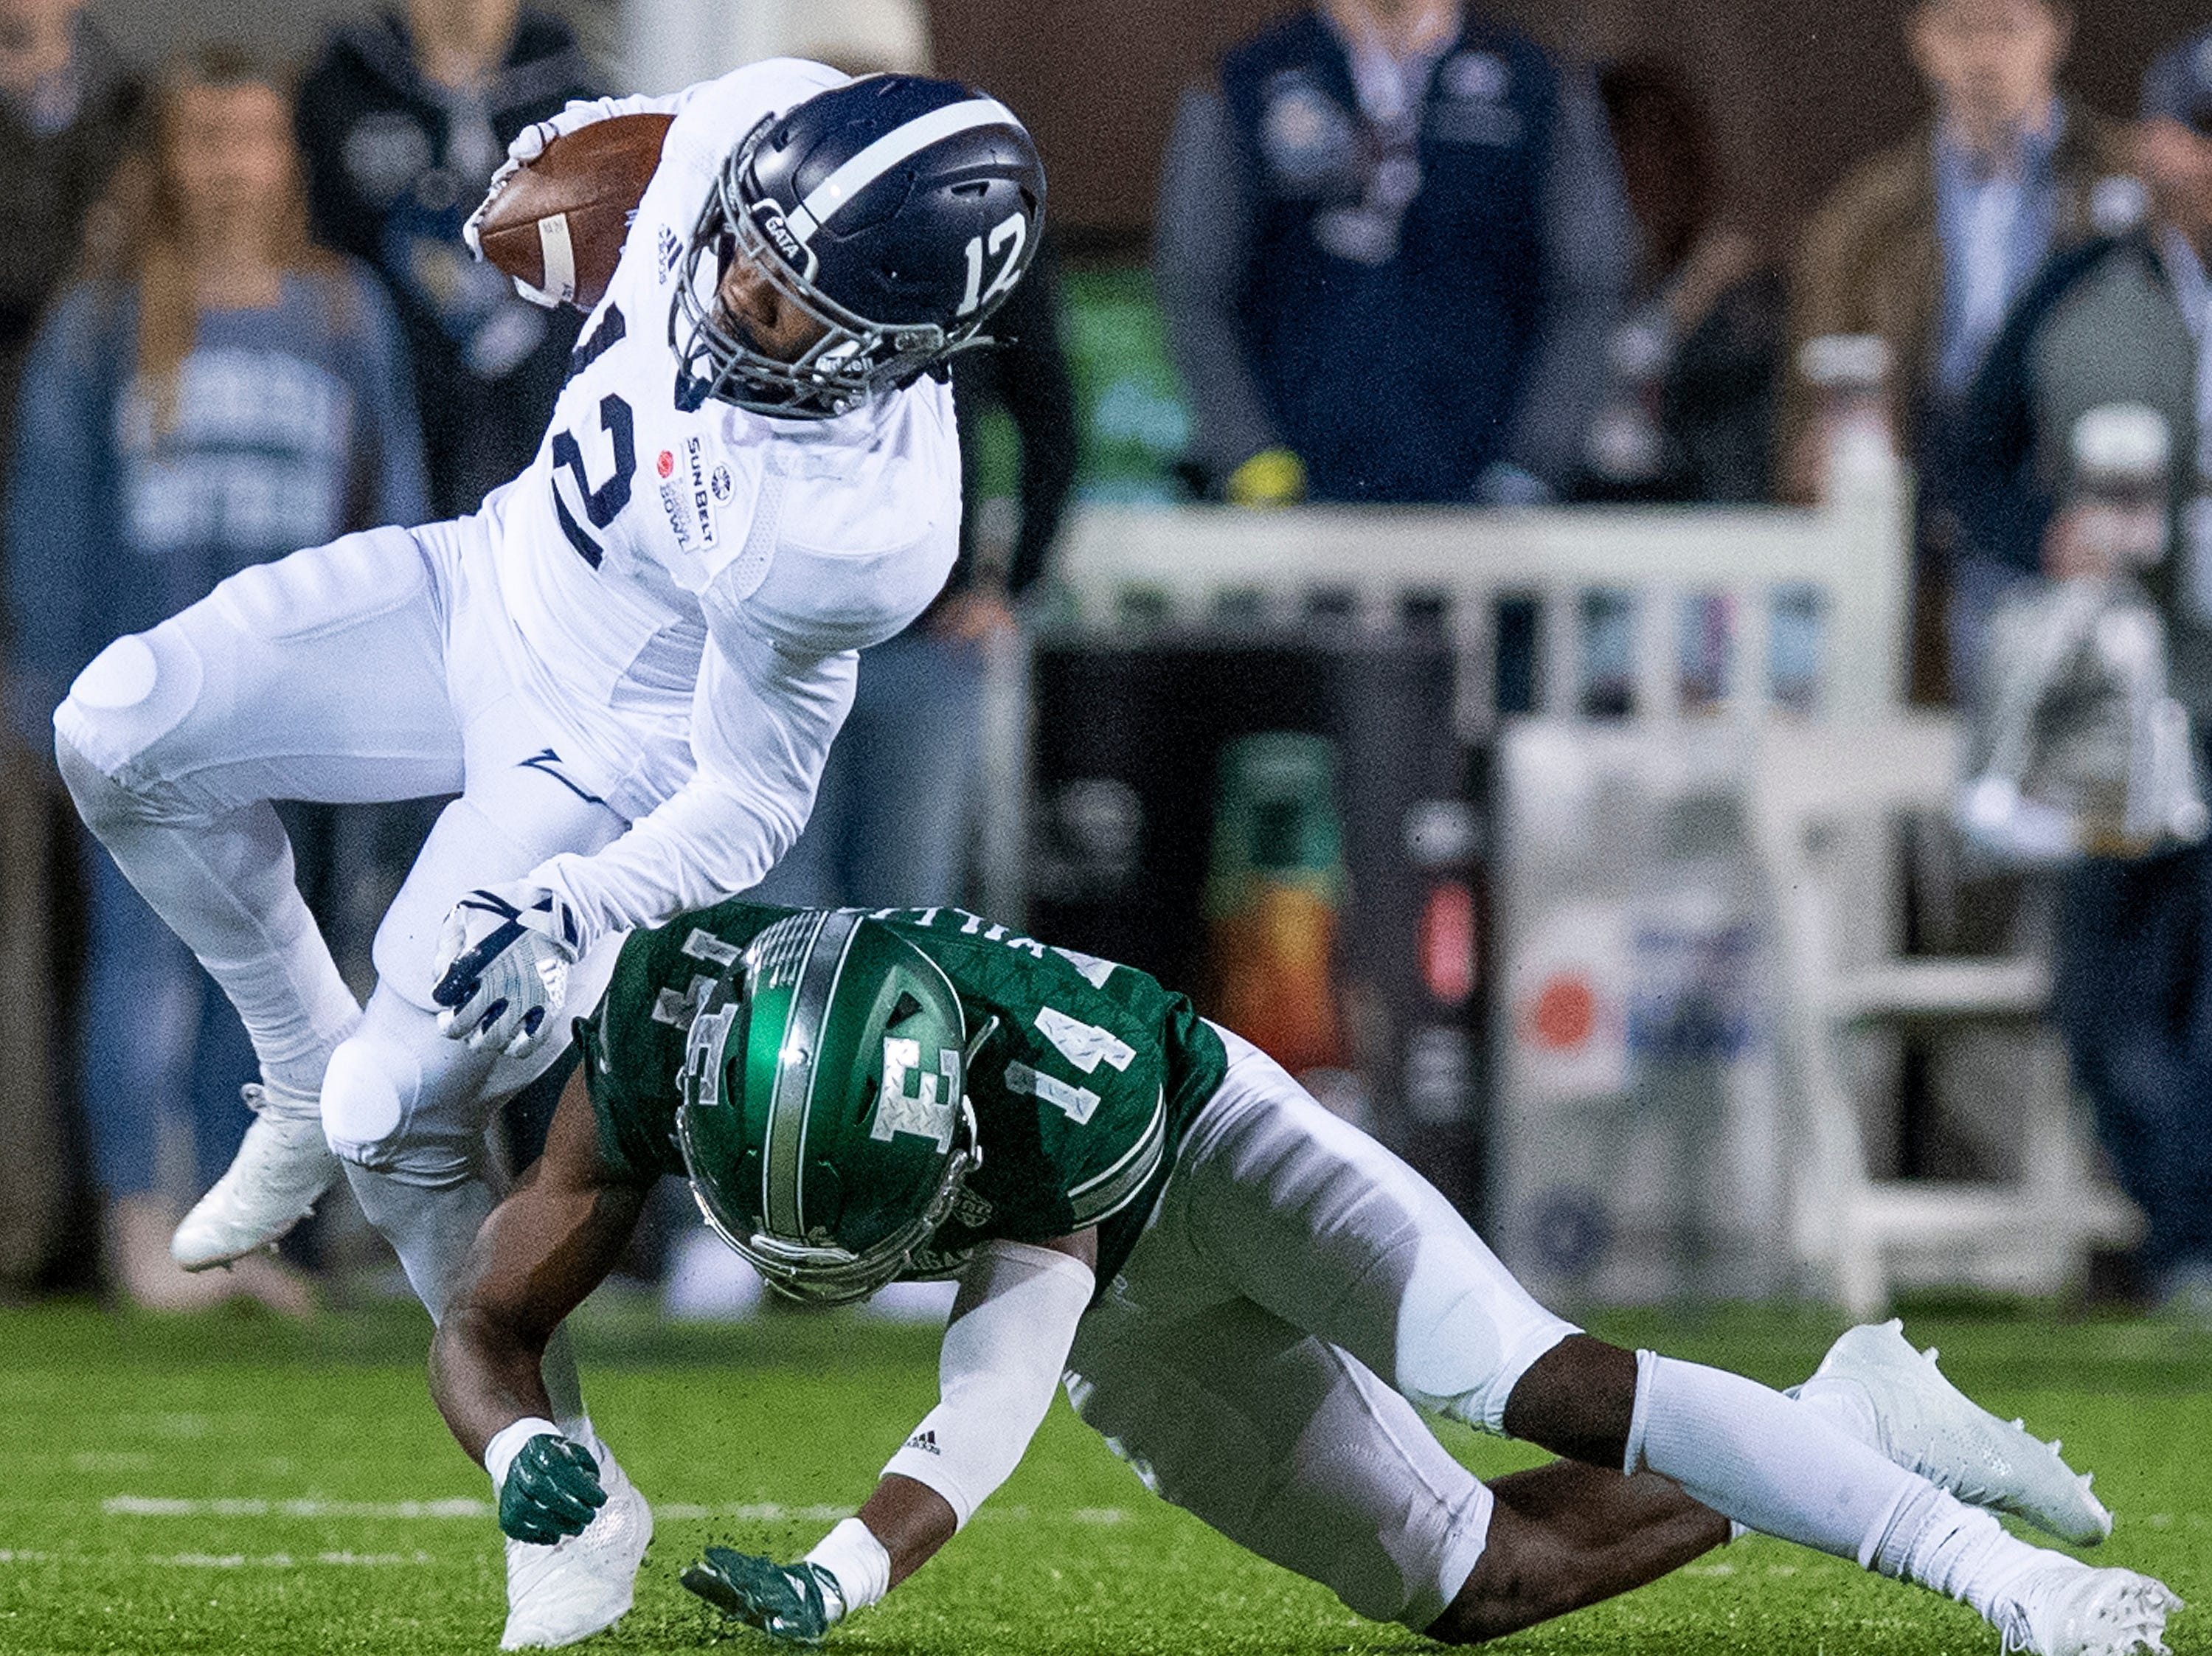 Georgia Southern running back Wesley Kennedy, III, (12) is upended by Eastern Michigan defensive back Ross Williams (14) during first half action in the Raycom Media  Camellia Bowl held at Cramton Bowl in Montgomery, Ala., on Saturday December 15, 2018.